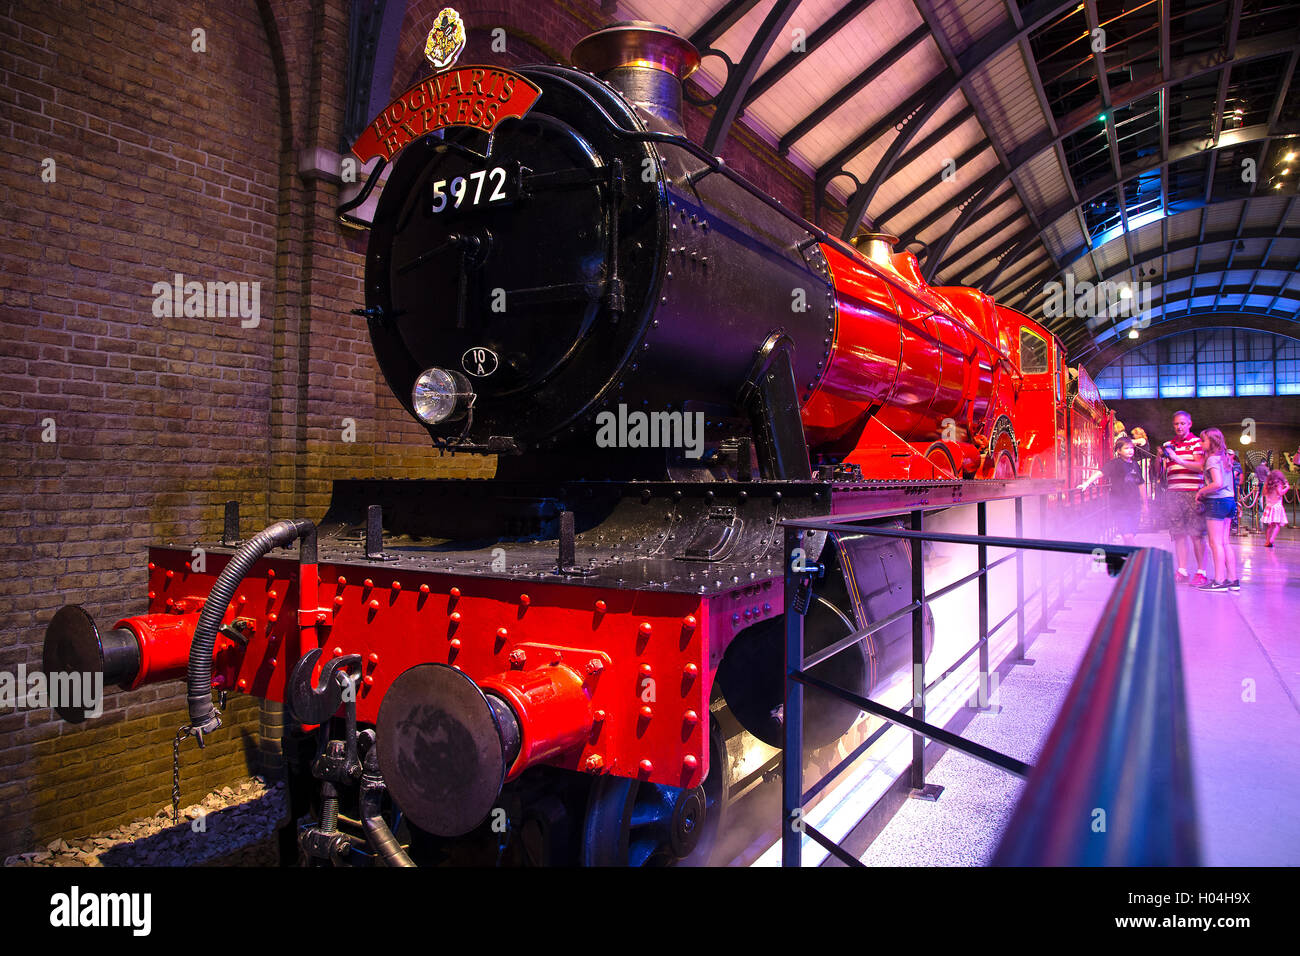 Hogwarts express train, Warner Brothers Studio Tour, The Making of Harry Potter, London Stock Photo